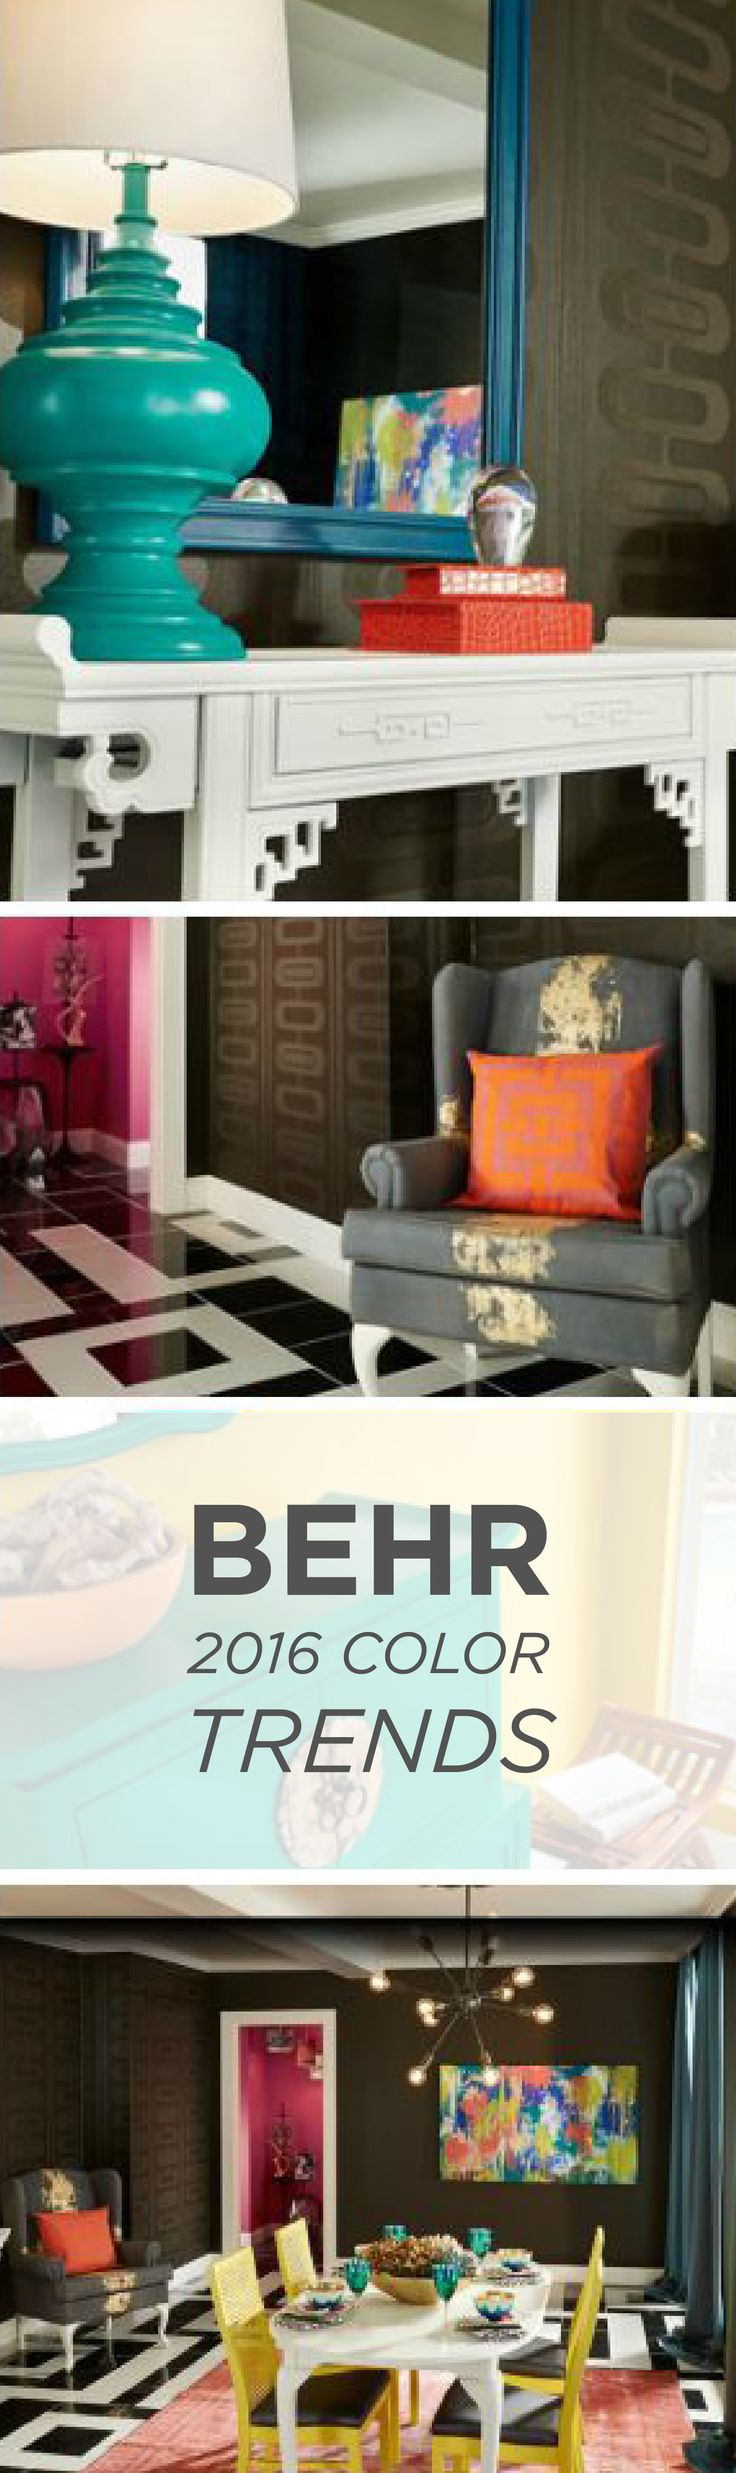 4 Tips For Contrasting Color In Home Decor